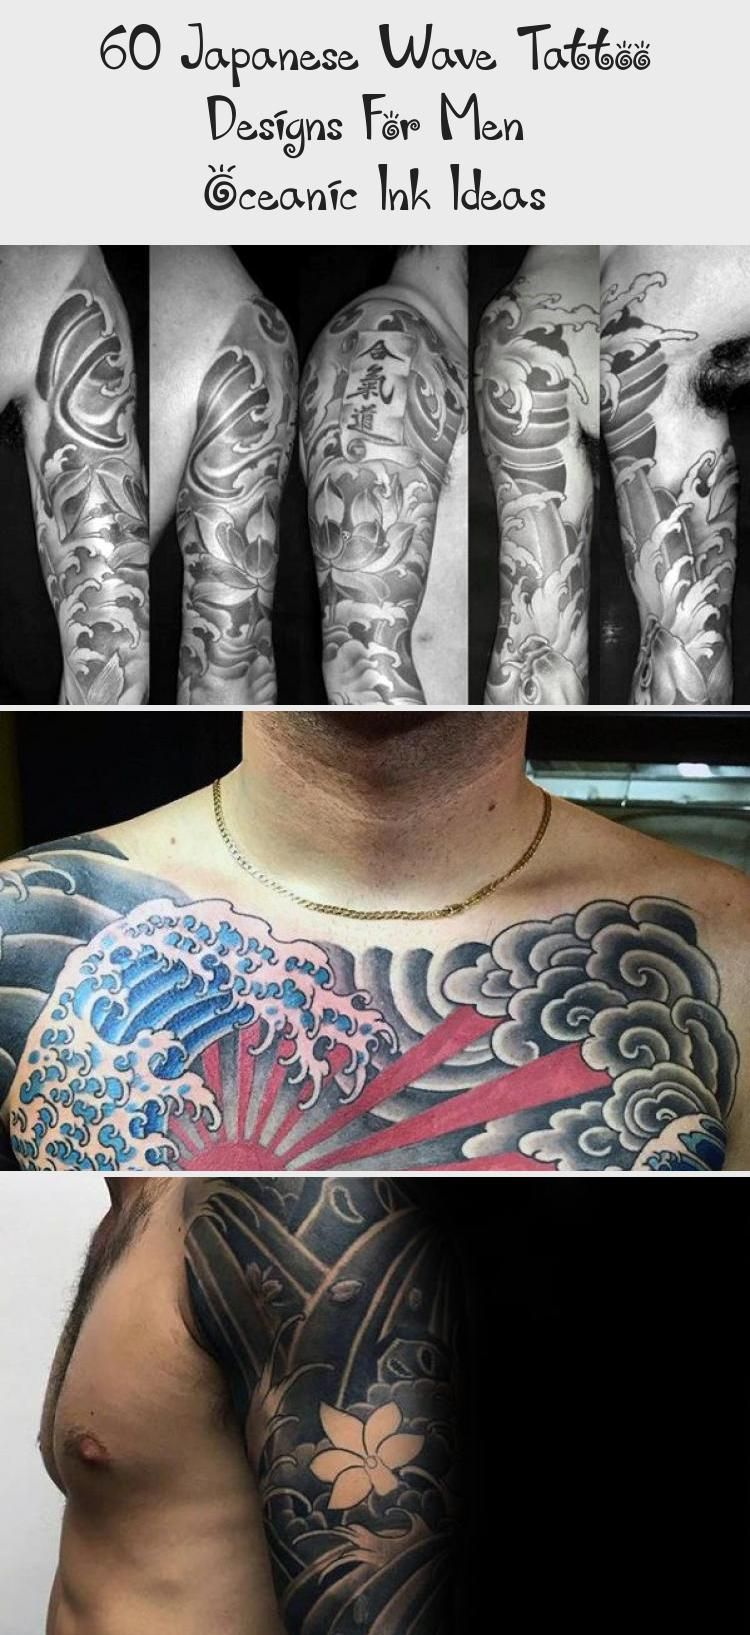 Photo of 60 Japanese Wave Tattoo Designs For Men – Oceanic Ink Ideas – Tattoos and Body Art